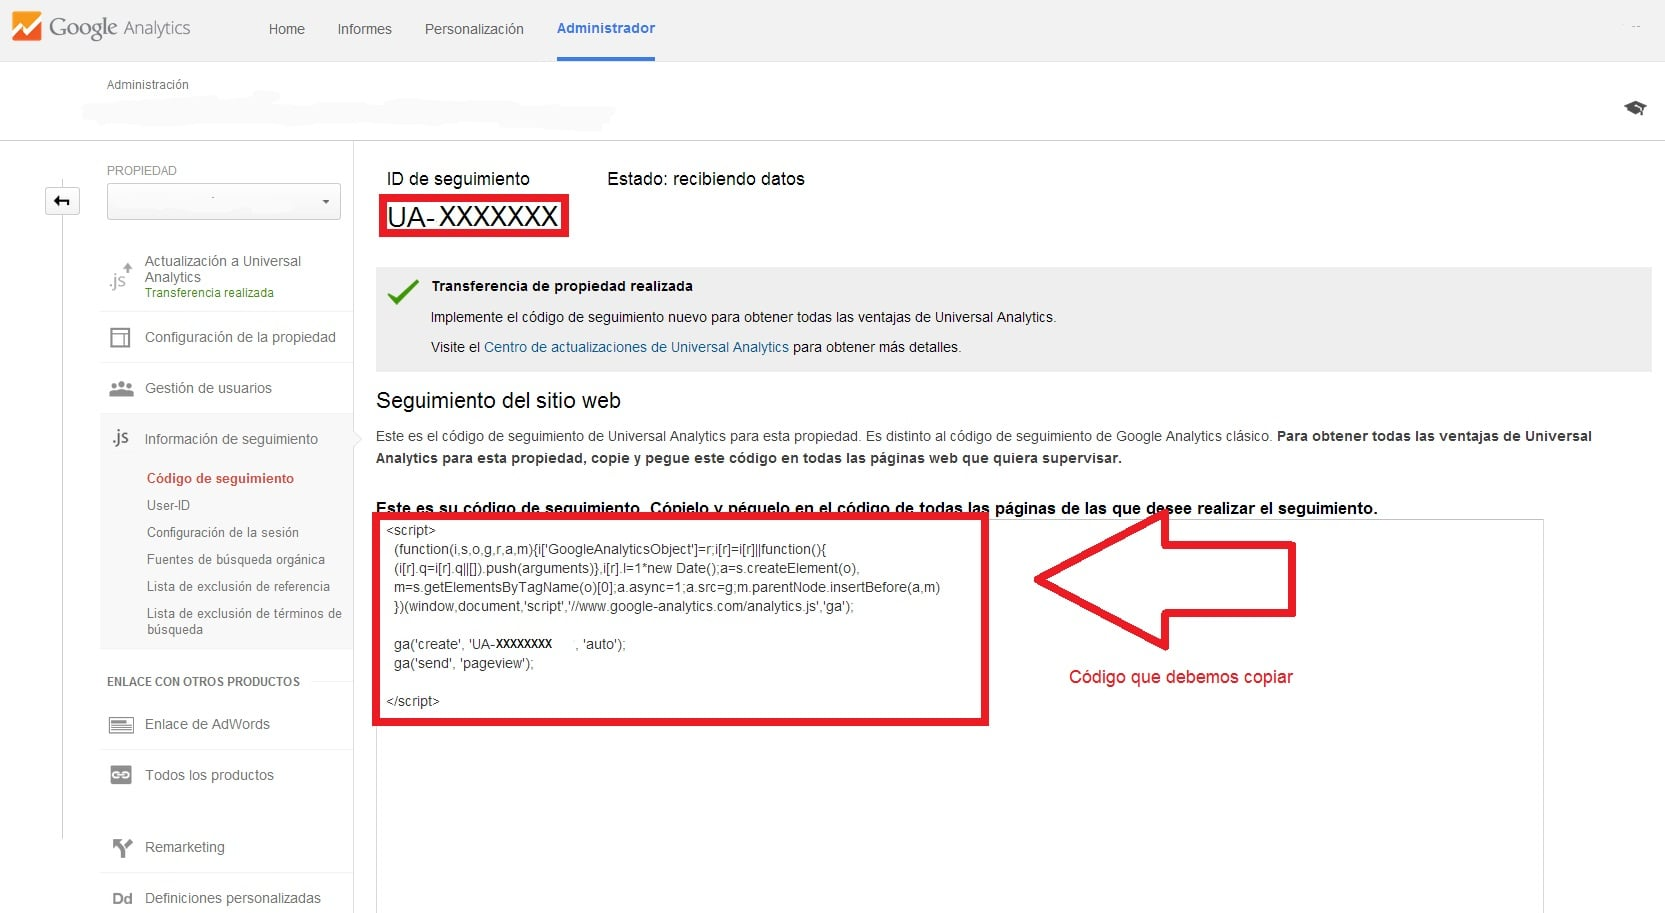 Google analytics copiar codigo